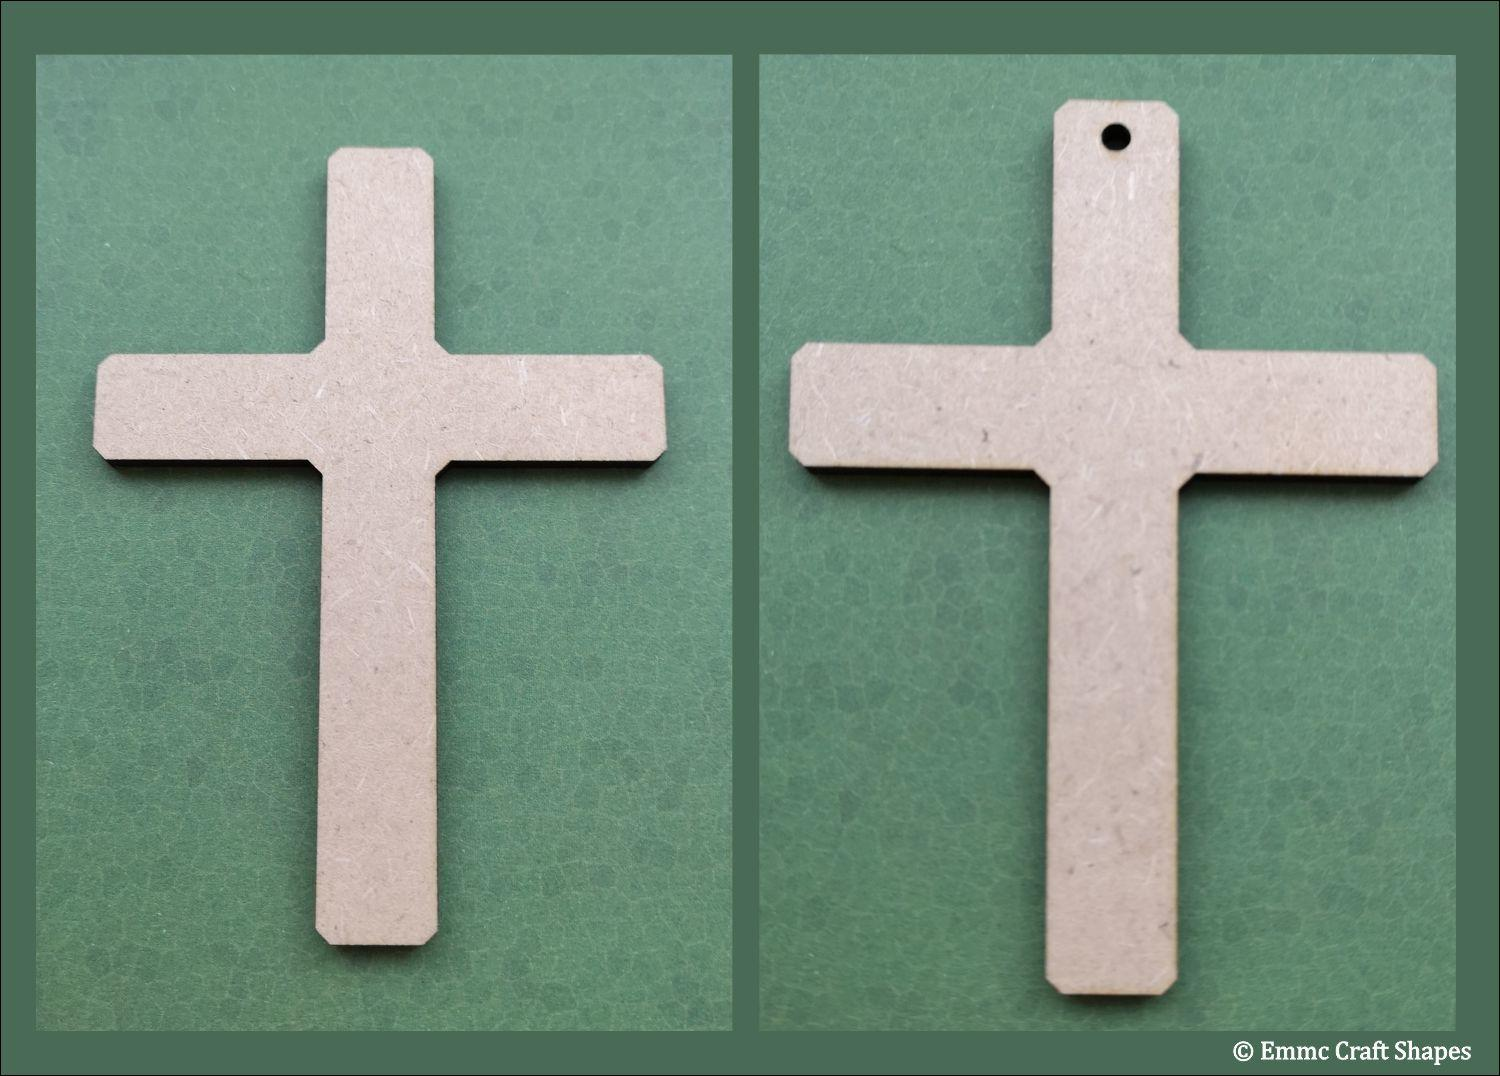 laser cut, 3mm thick mdf cross shape. One with a hole one with no hole